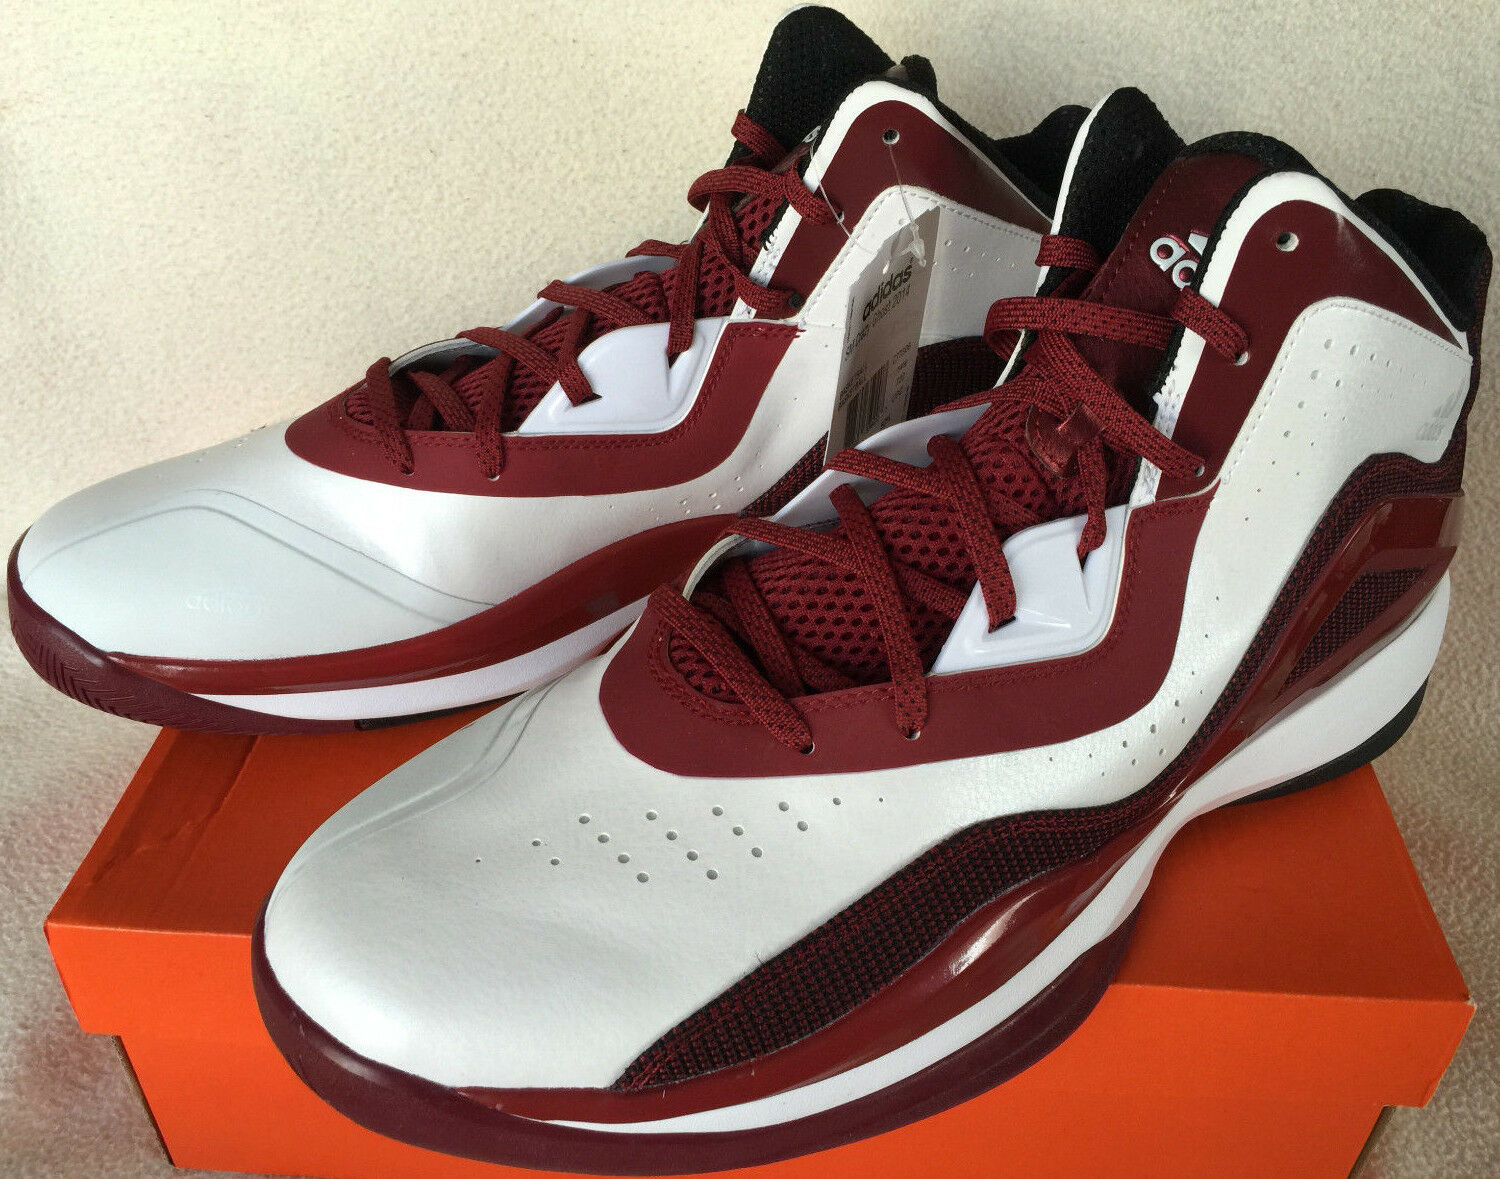 Adidas SM Crazy Ghost 2014 C77306 White Maroon Basketball Shoes Men's 15 NBA new